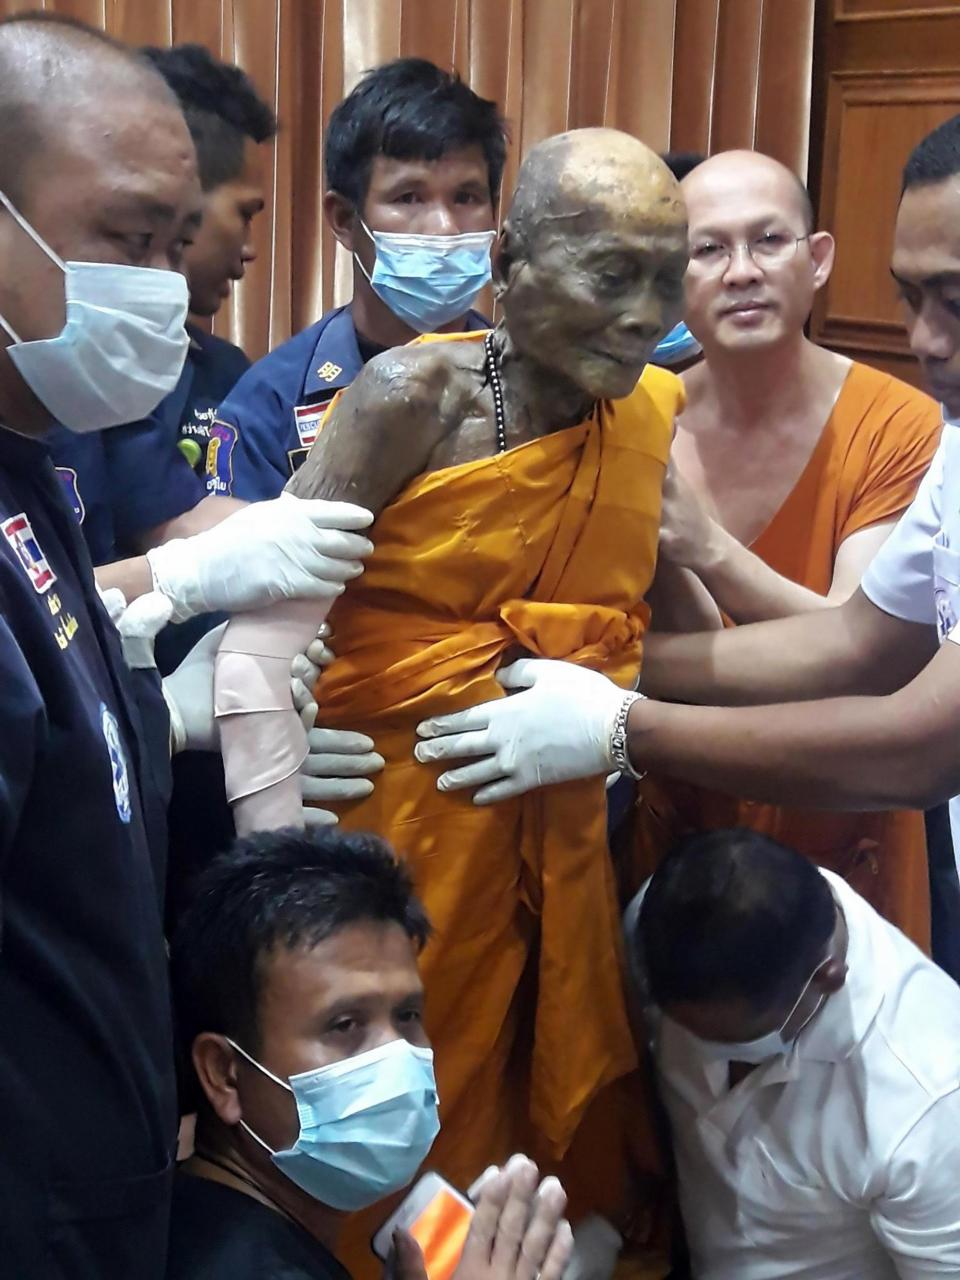 Monk Smiles After Body Unearthed Two Months After Death 6801d7885a66a0ab1cbe6d5f7f2da6f7